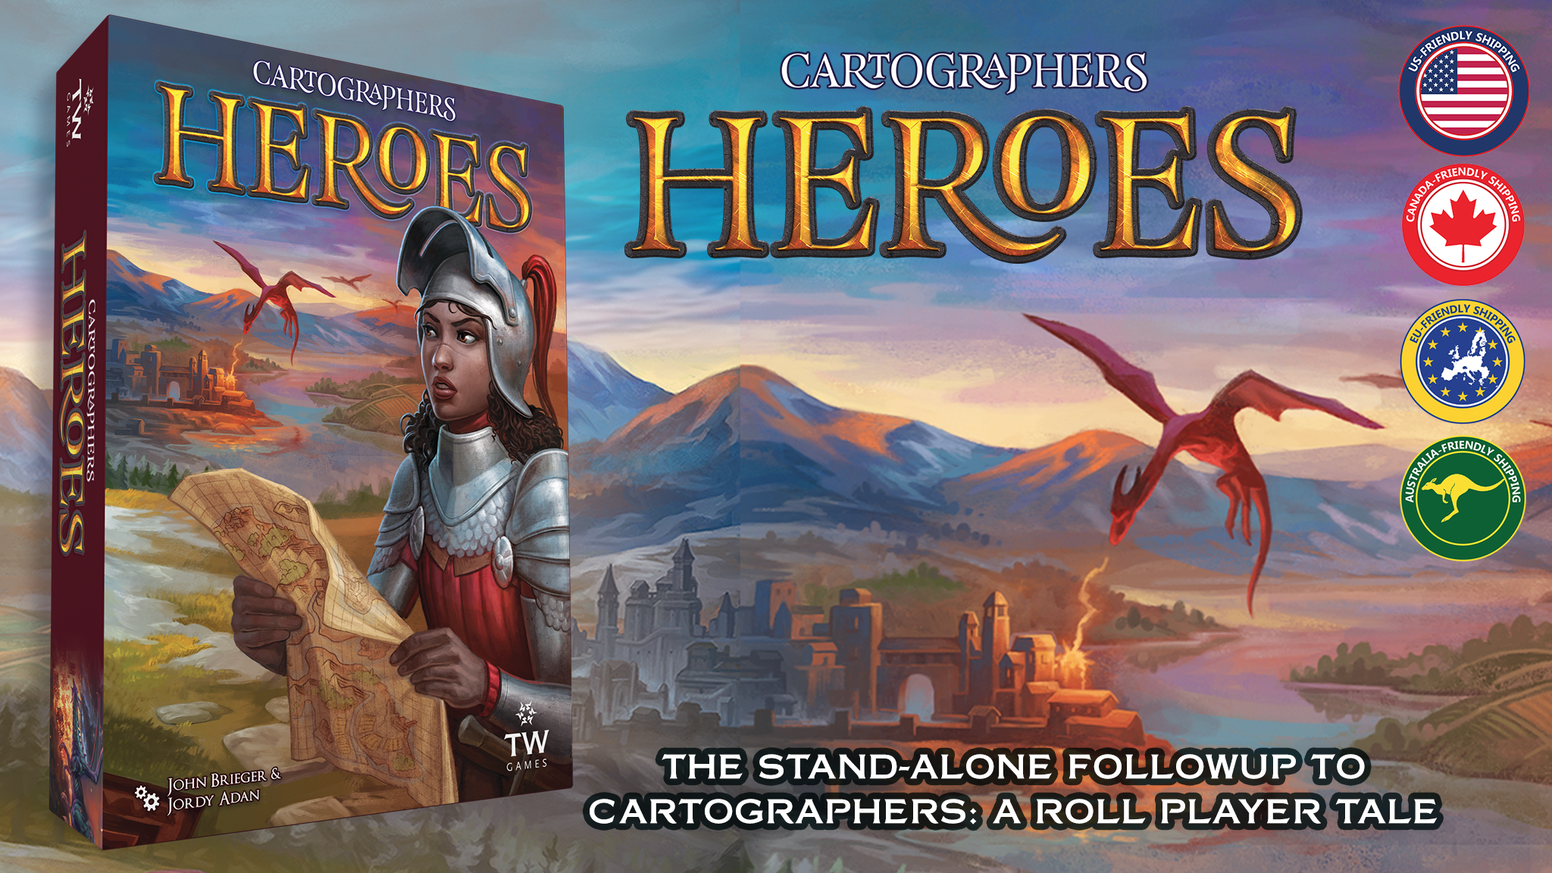 The stand-alone follow up to the critically acclaimed map-drawing game - Cartographers: A Roll Player Tale.